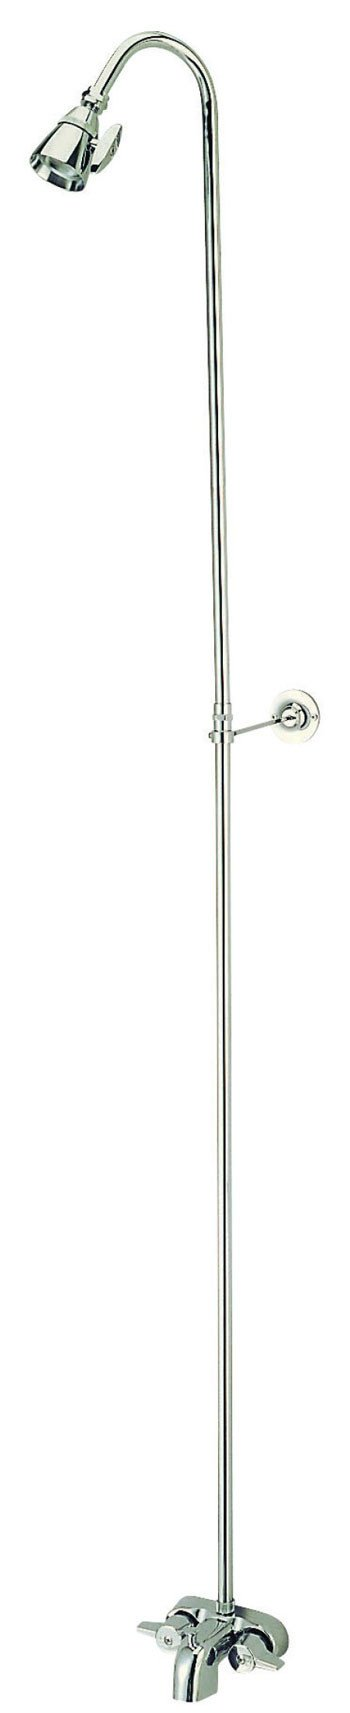 Kingston Brass Satin Nickel Converto Shower CC3128